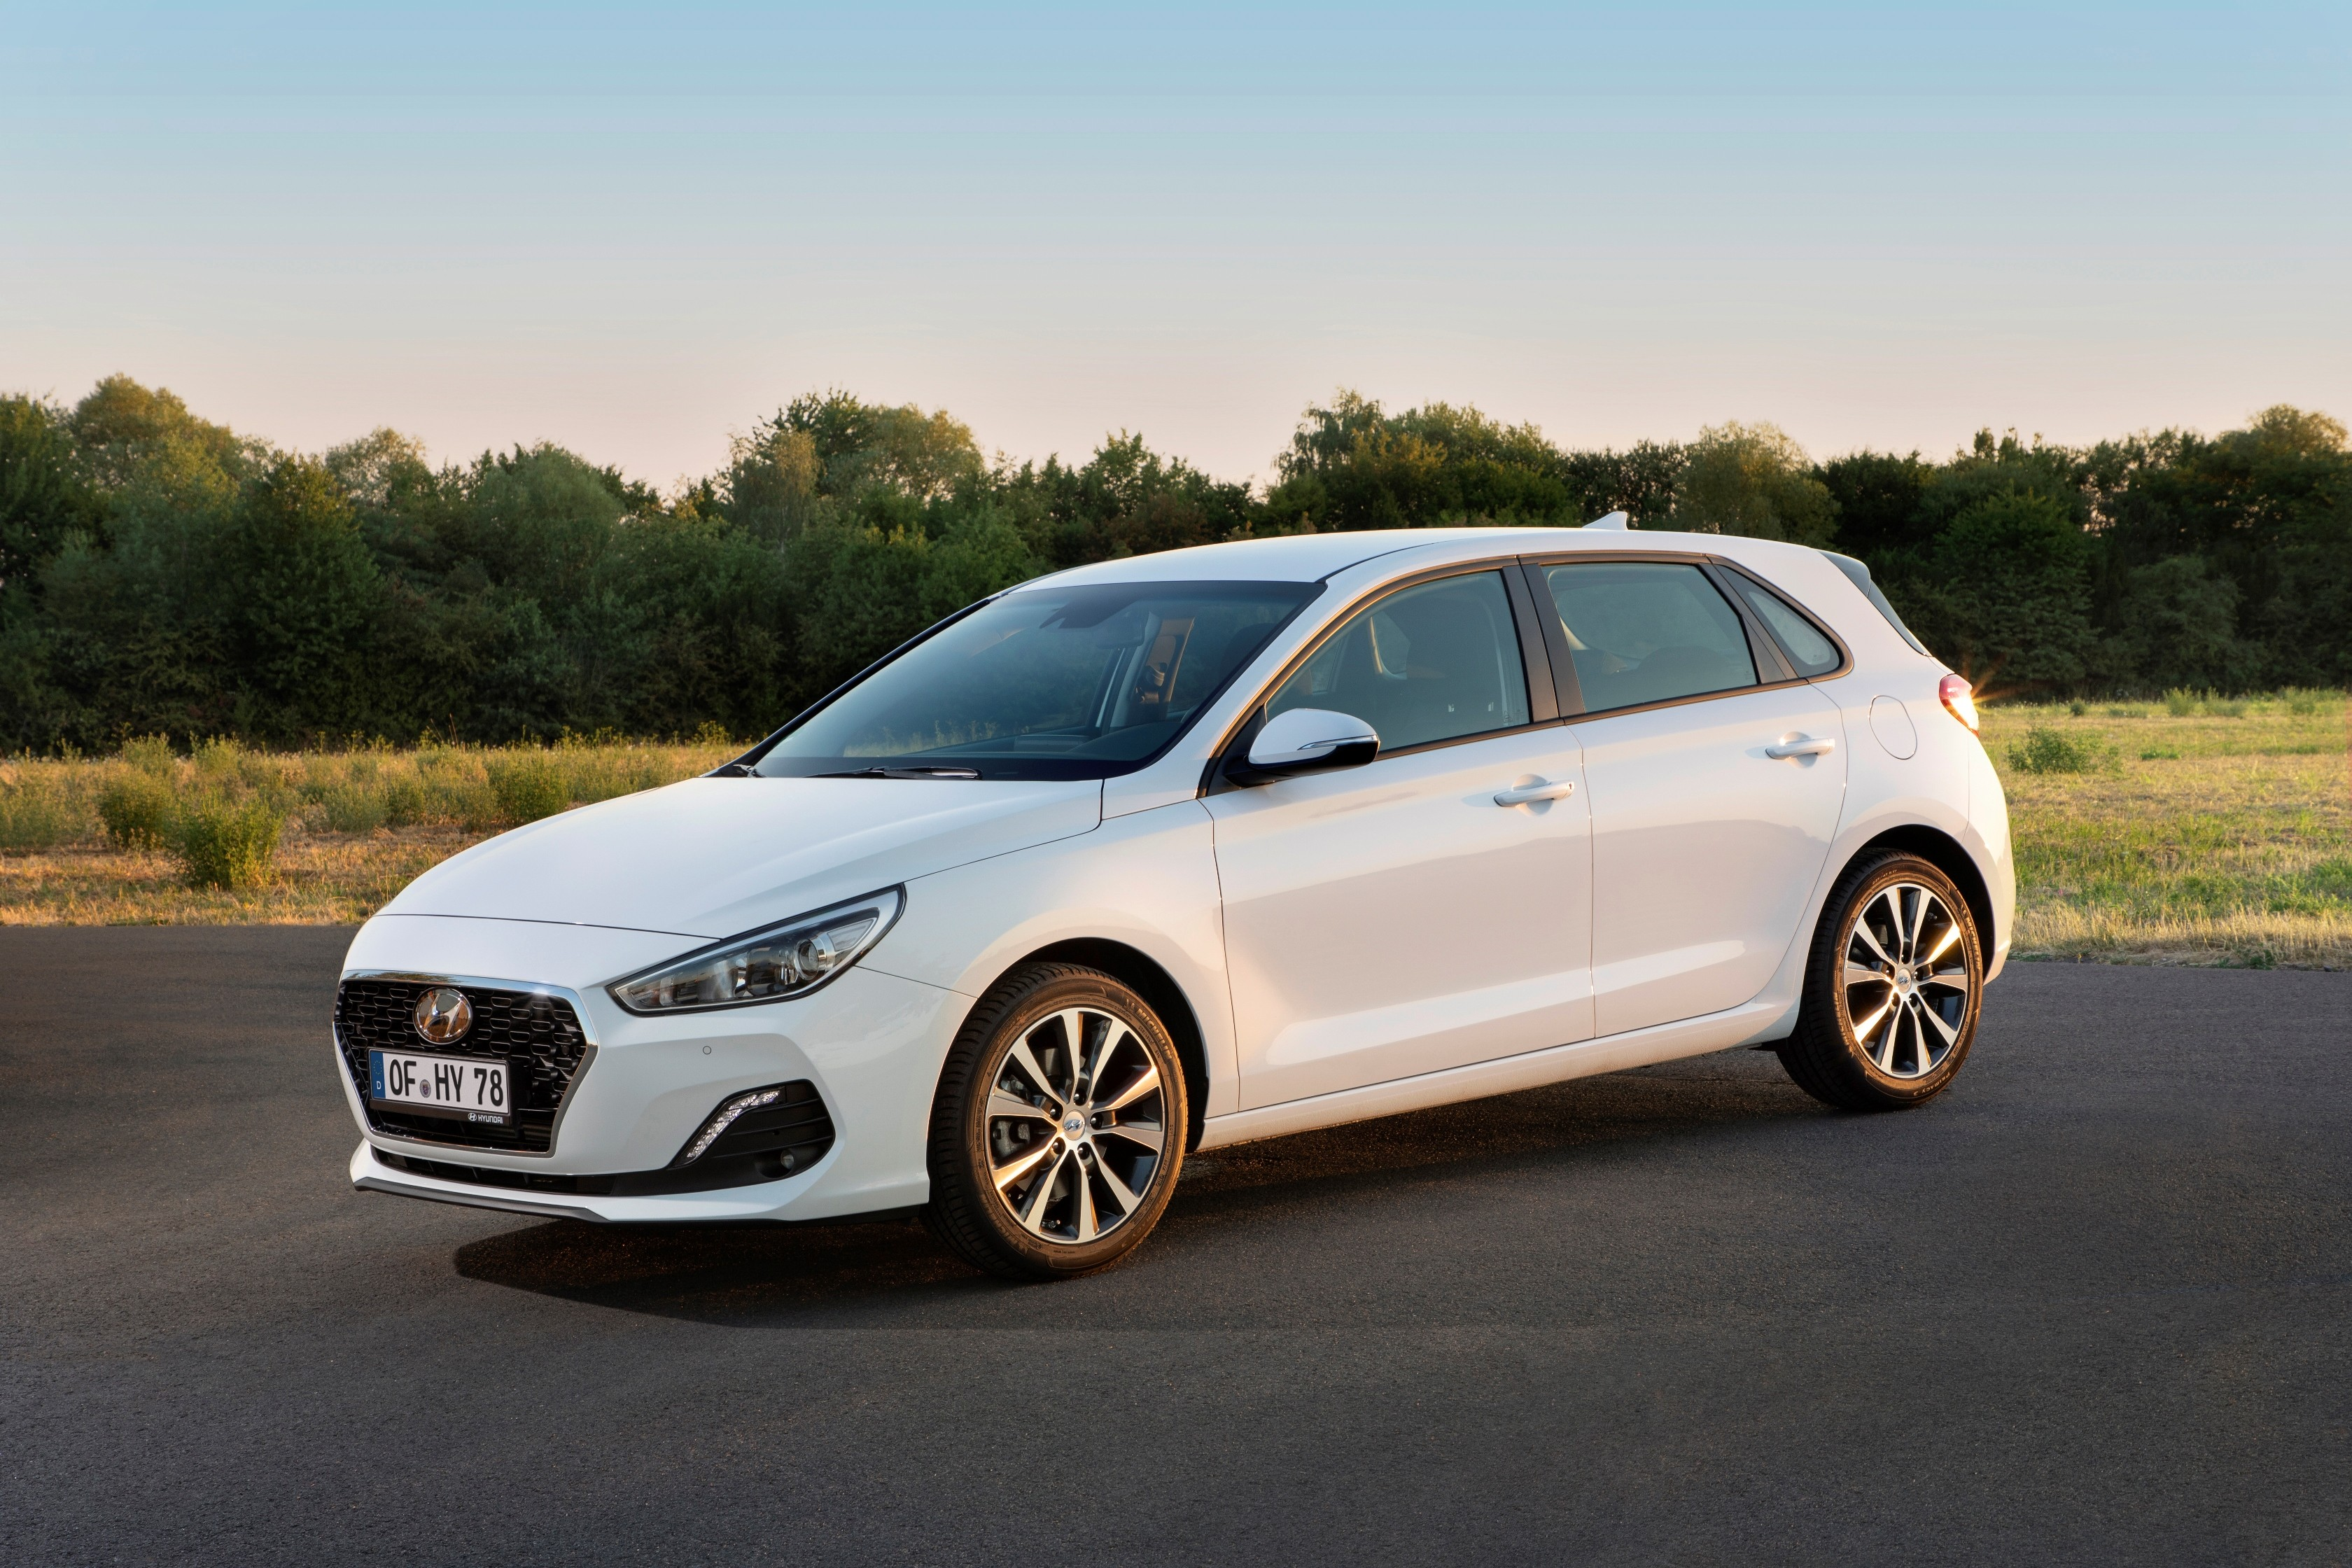 Diesel Exhaust Fluid >> 2019 Hyundai i30 Facelifted: Smartstream Engine, 8 ...